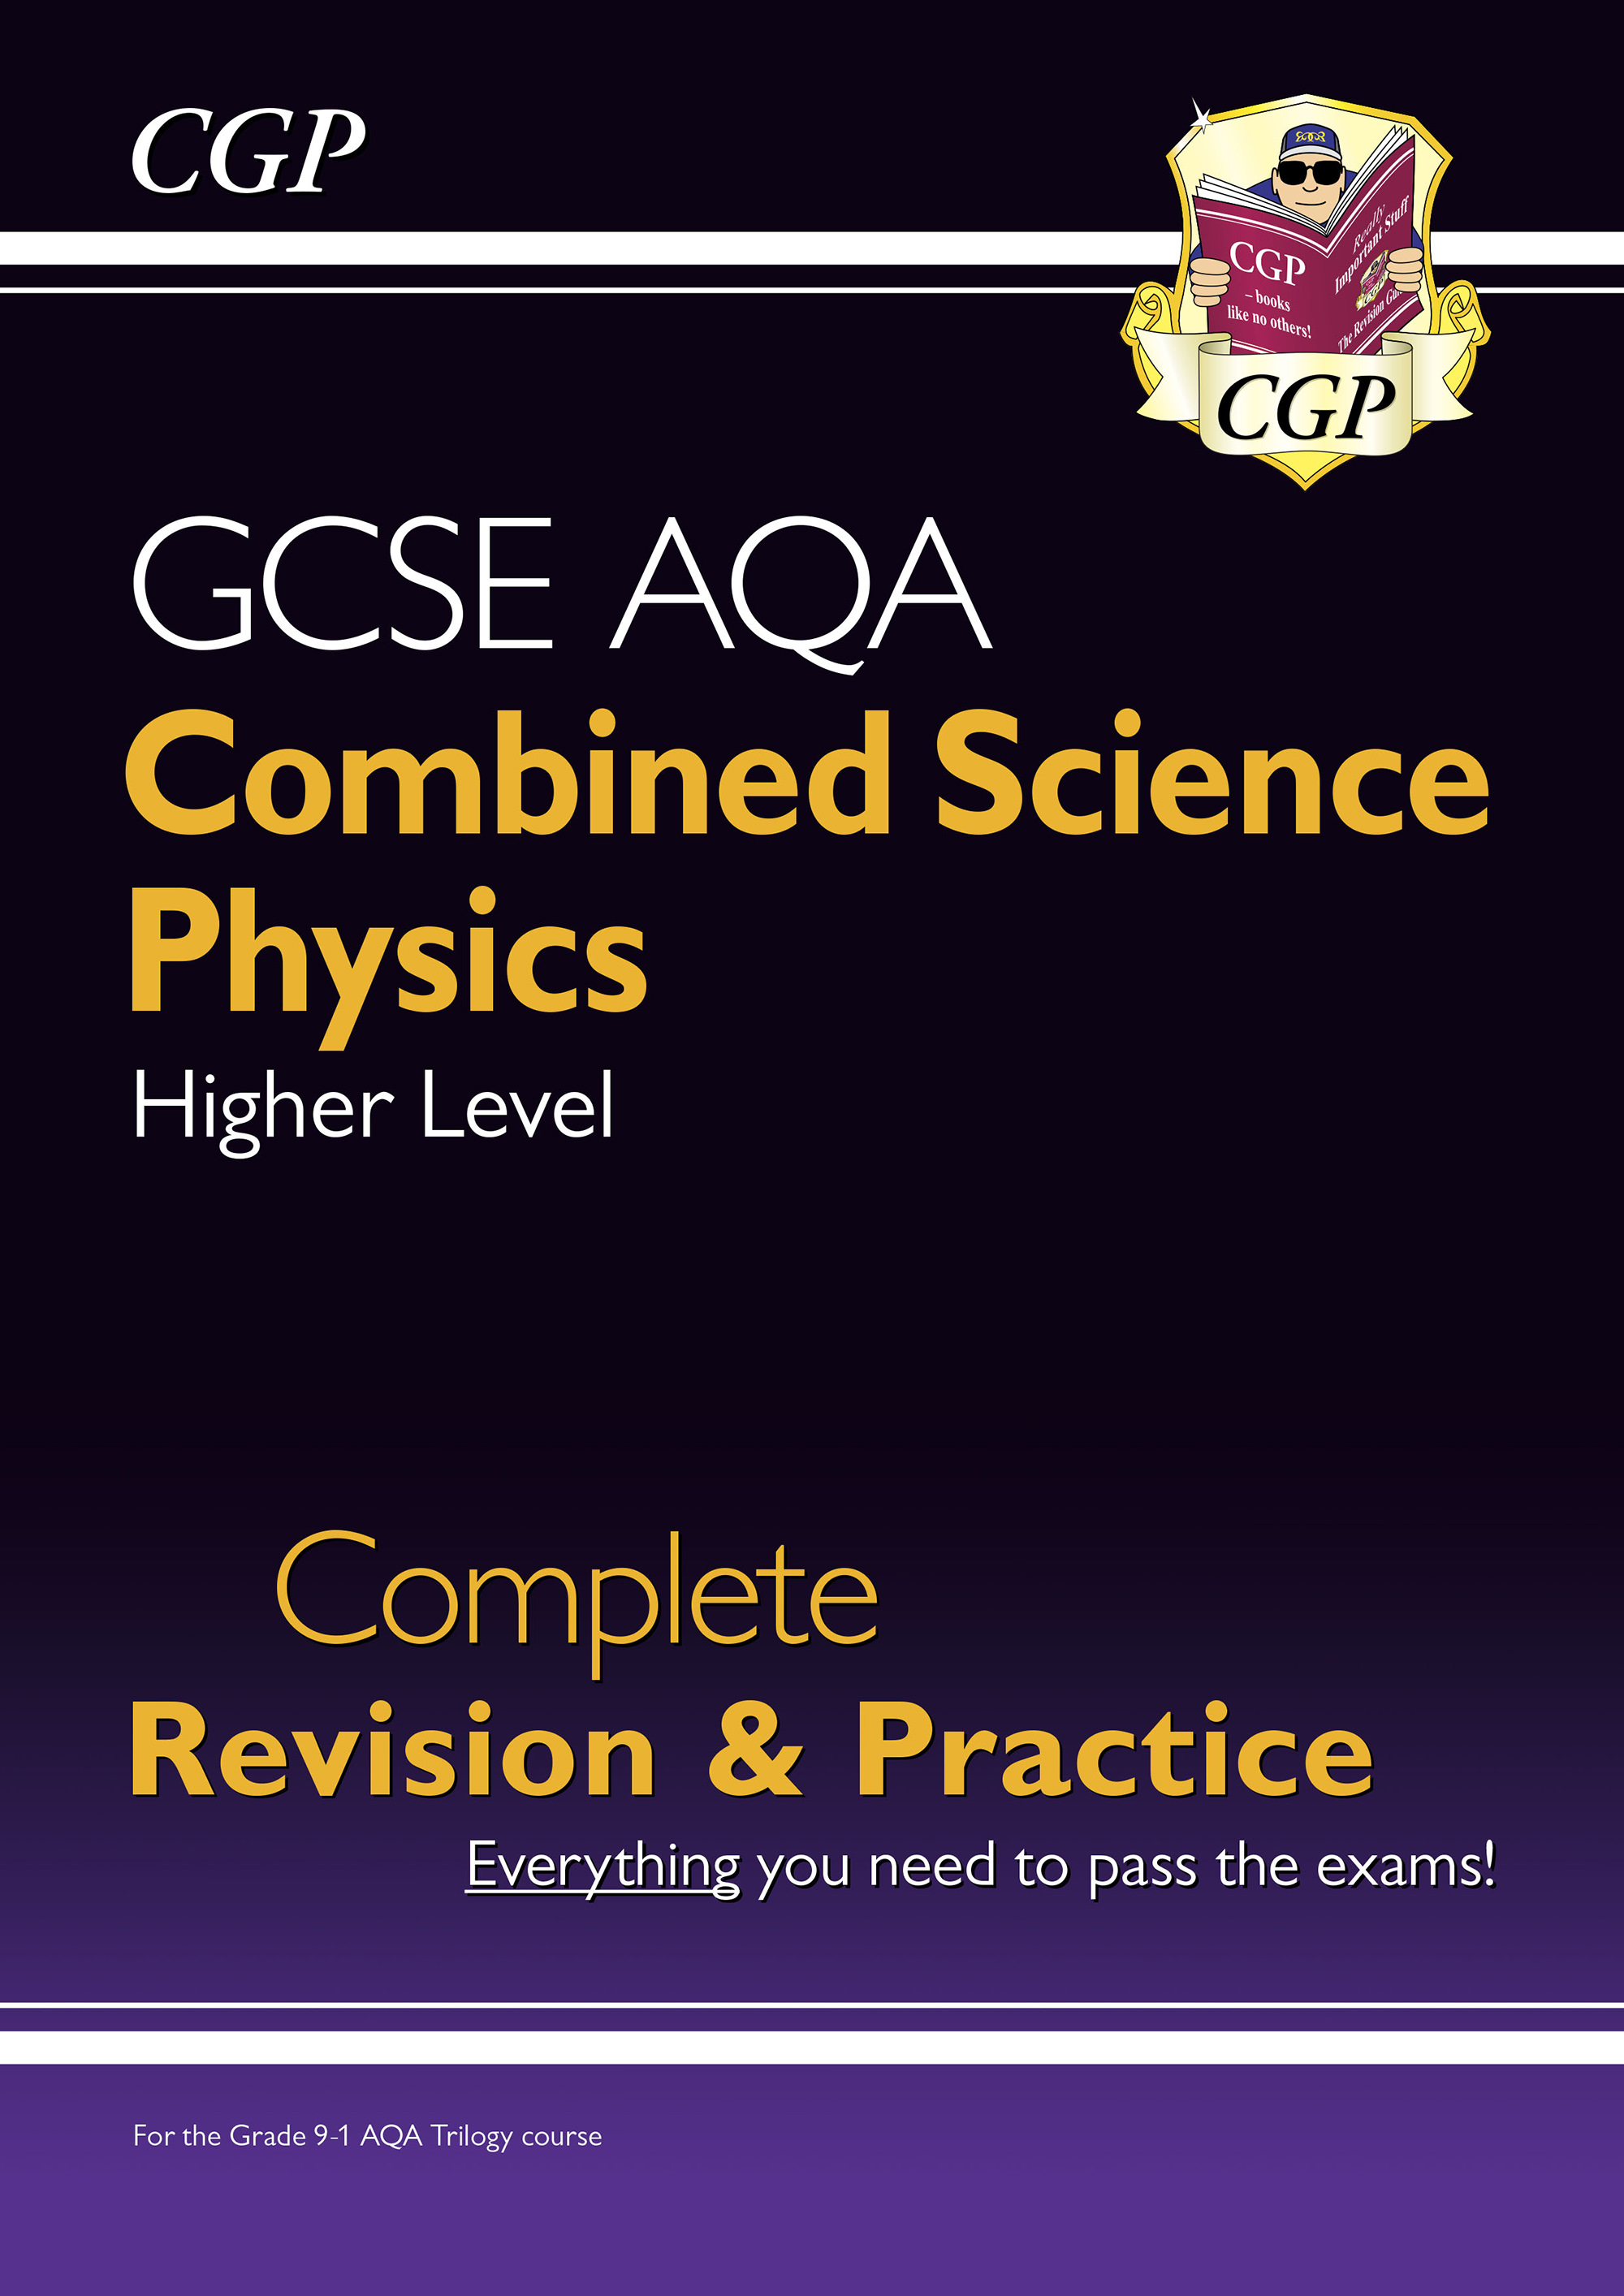 SCPAS41DK - New 9-1 GCSE Combined Science: Physics AQA Higher Complete Revision & Practice